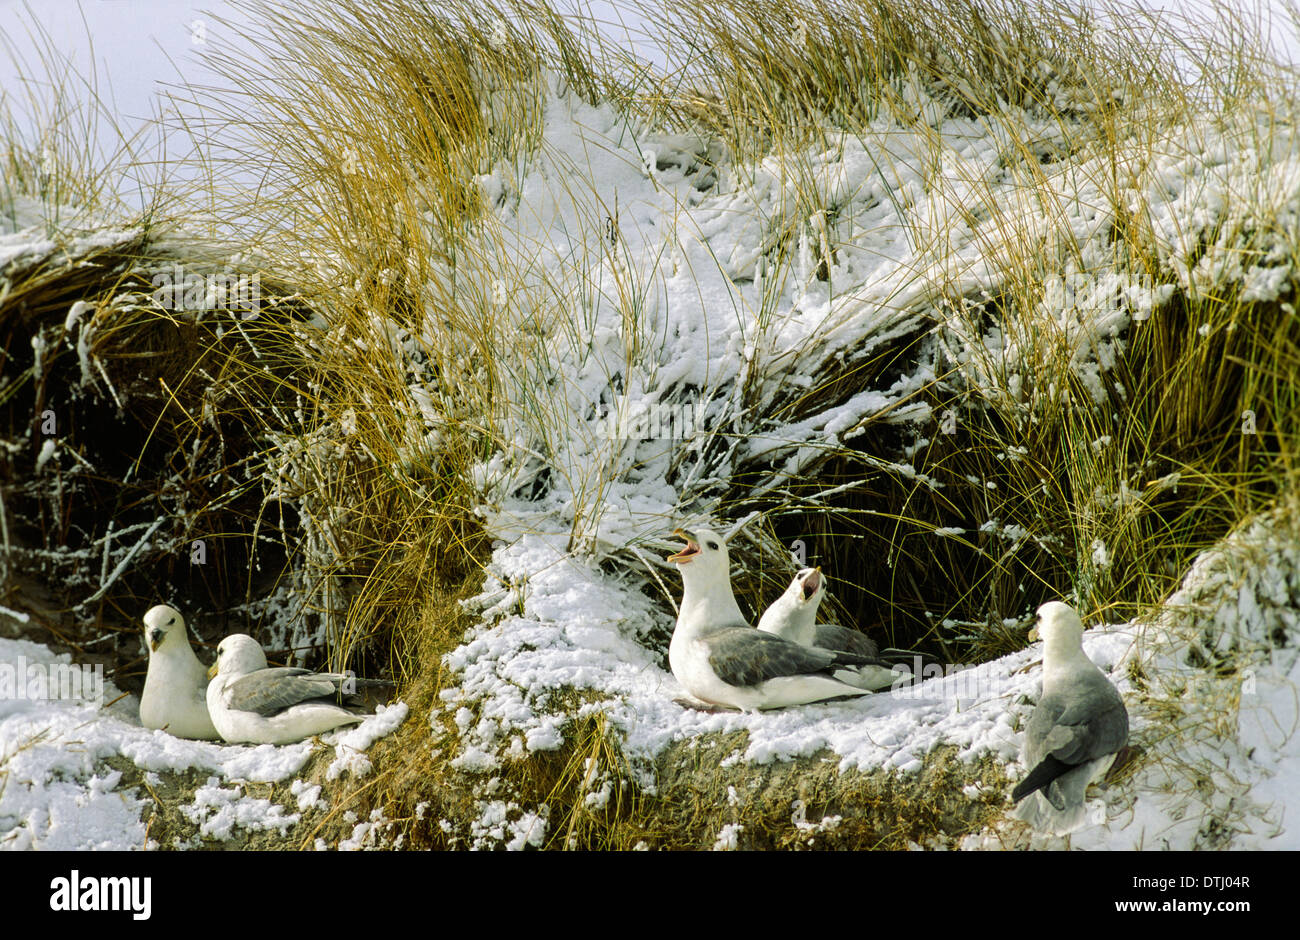 FULMARS [ FULMARUS ] NESTING IN  A BANK COVERED WITH SNOW IN THE ORKNEY ISLANDS - Stock Image